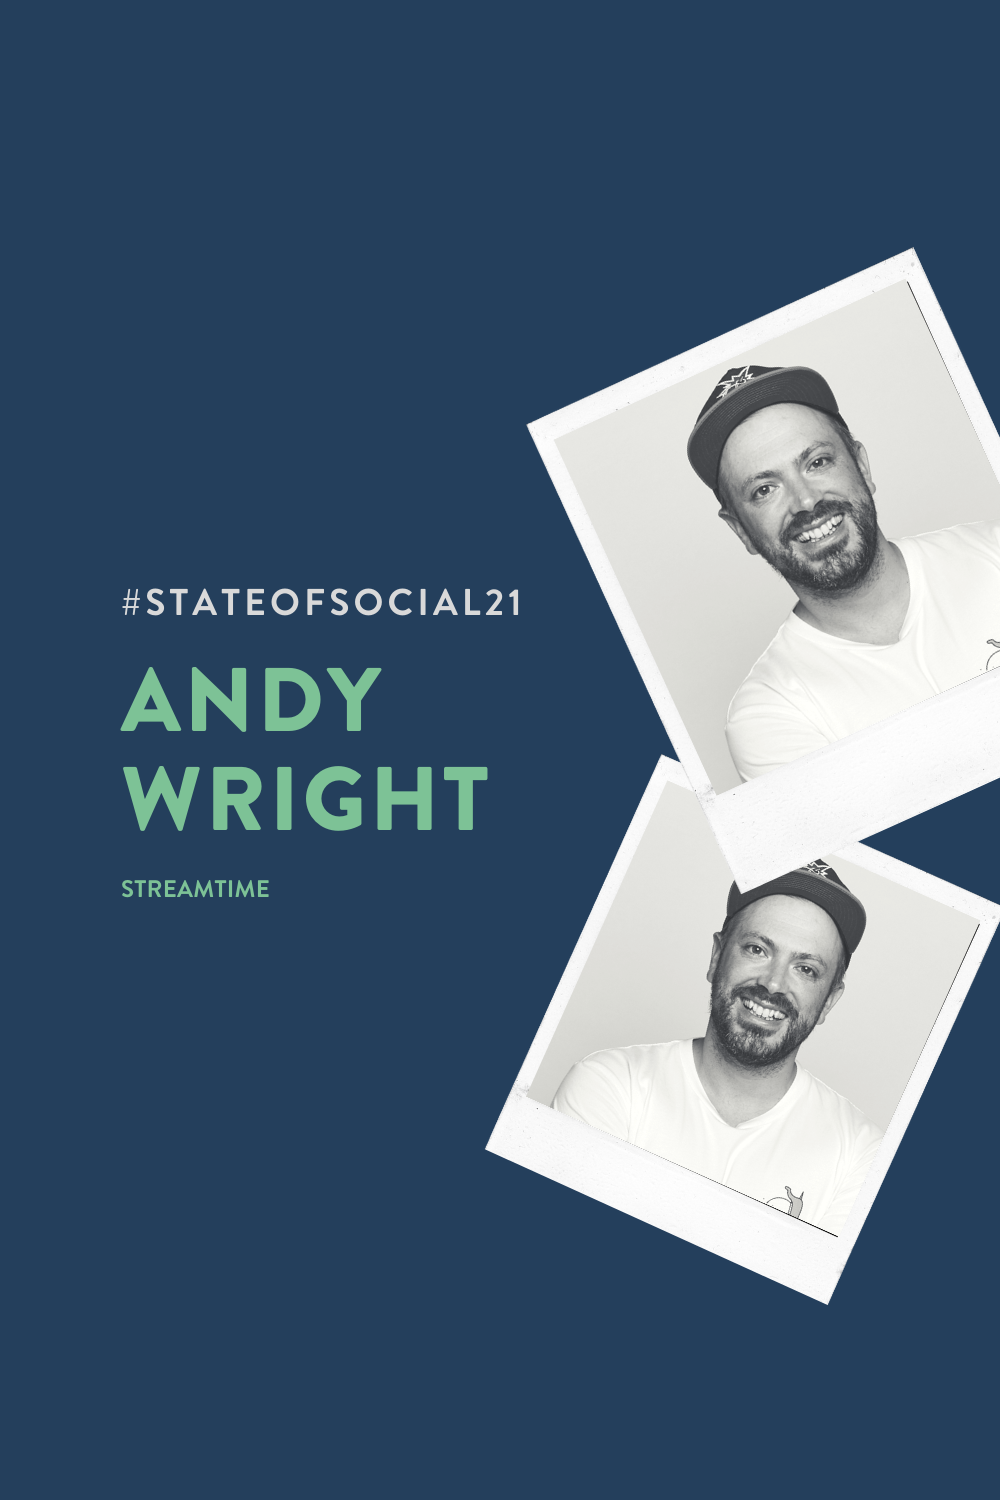 ANDY WRIGHT